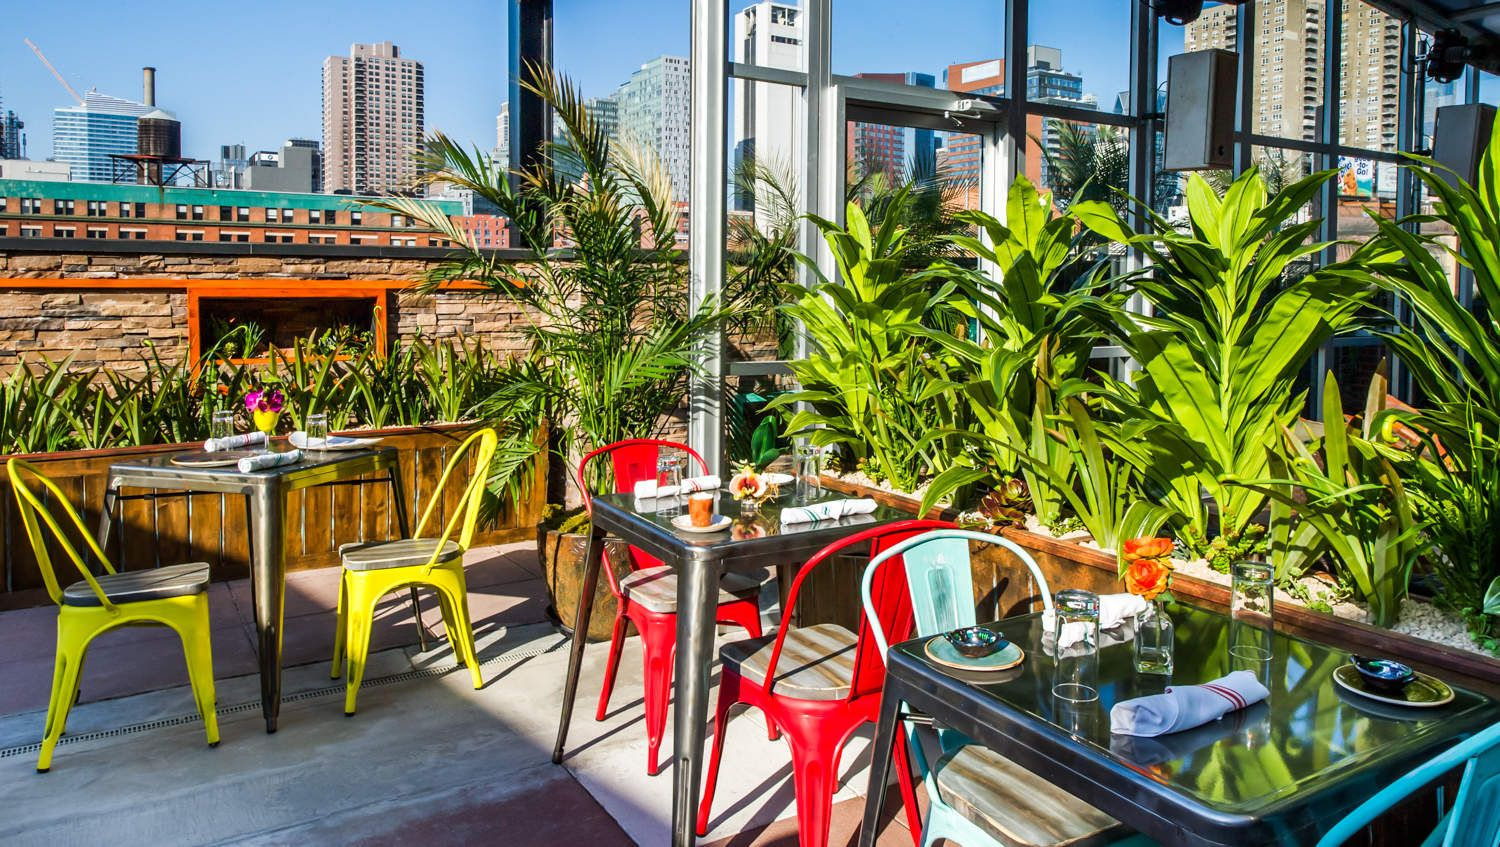 The Best Enclosed Rooftop Bars In Nyc With Images Nyc Rooftop Best Rooftop Bars Rooftop Bars Nyc